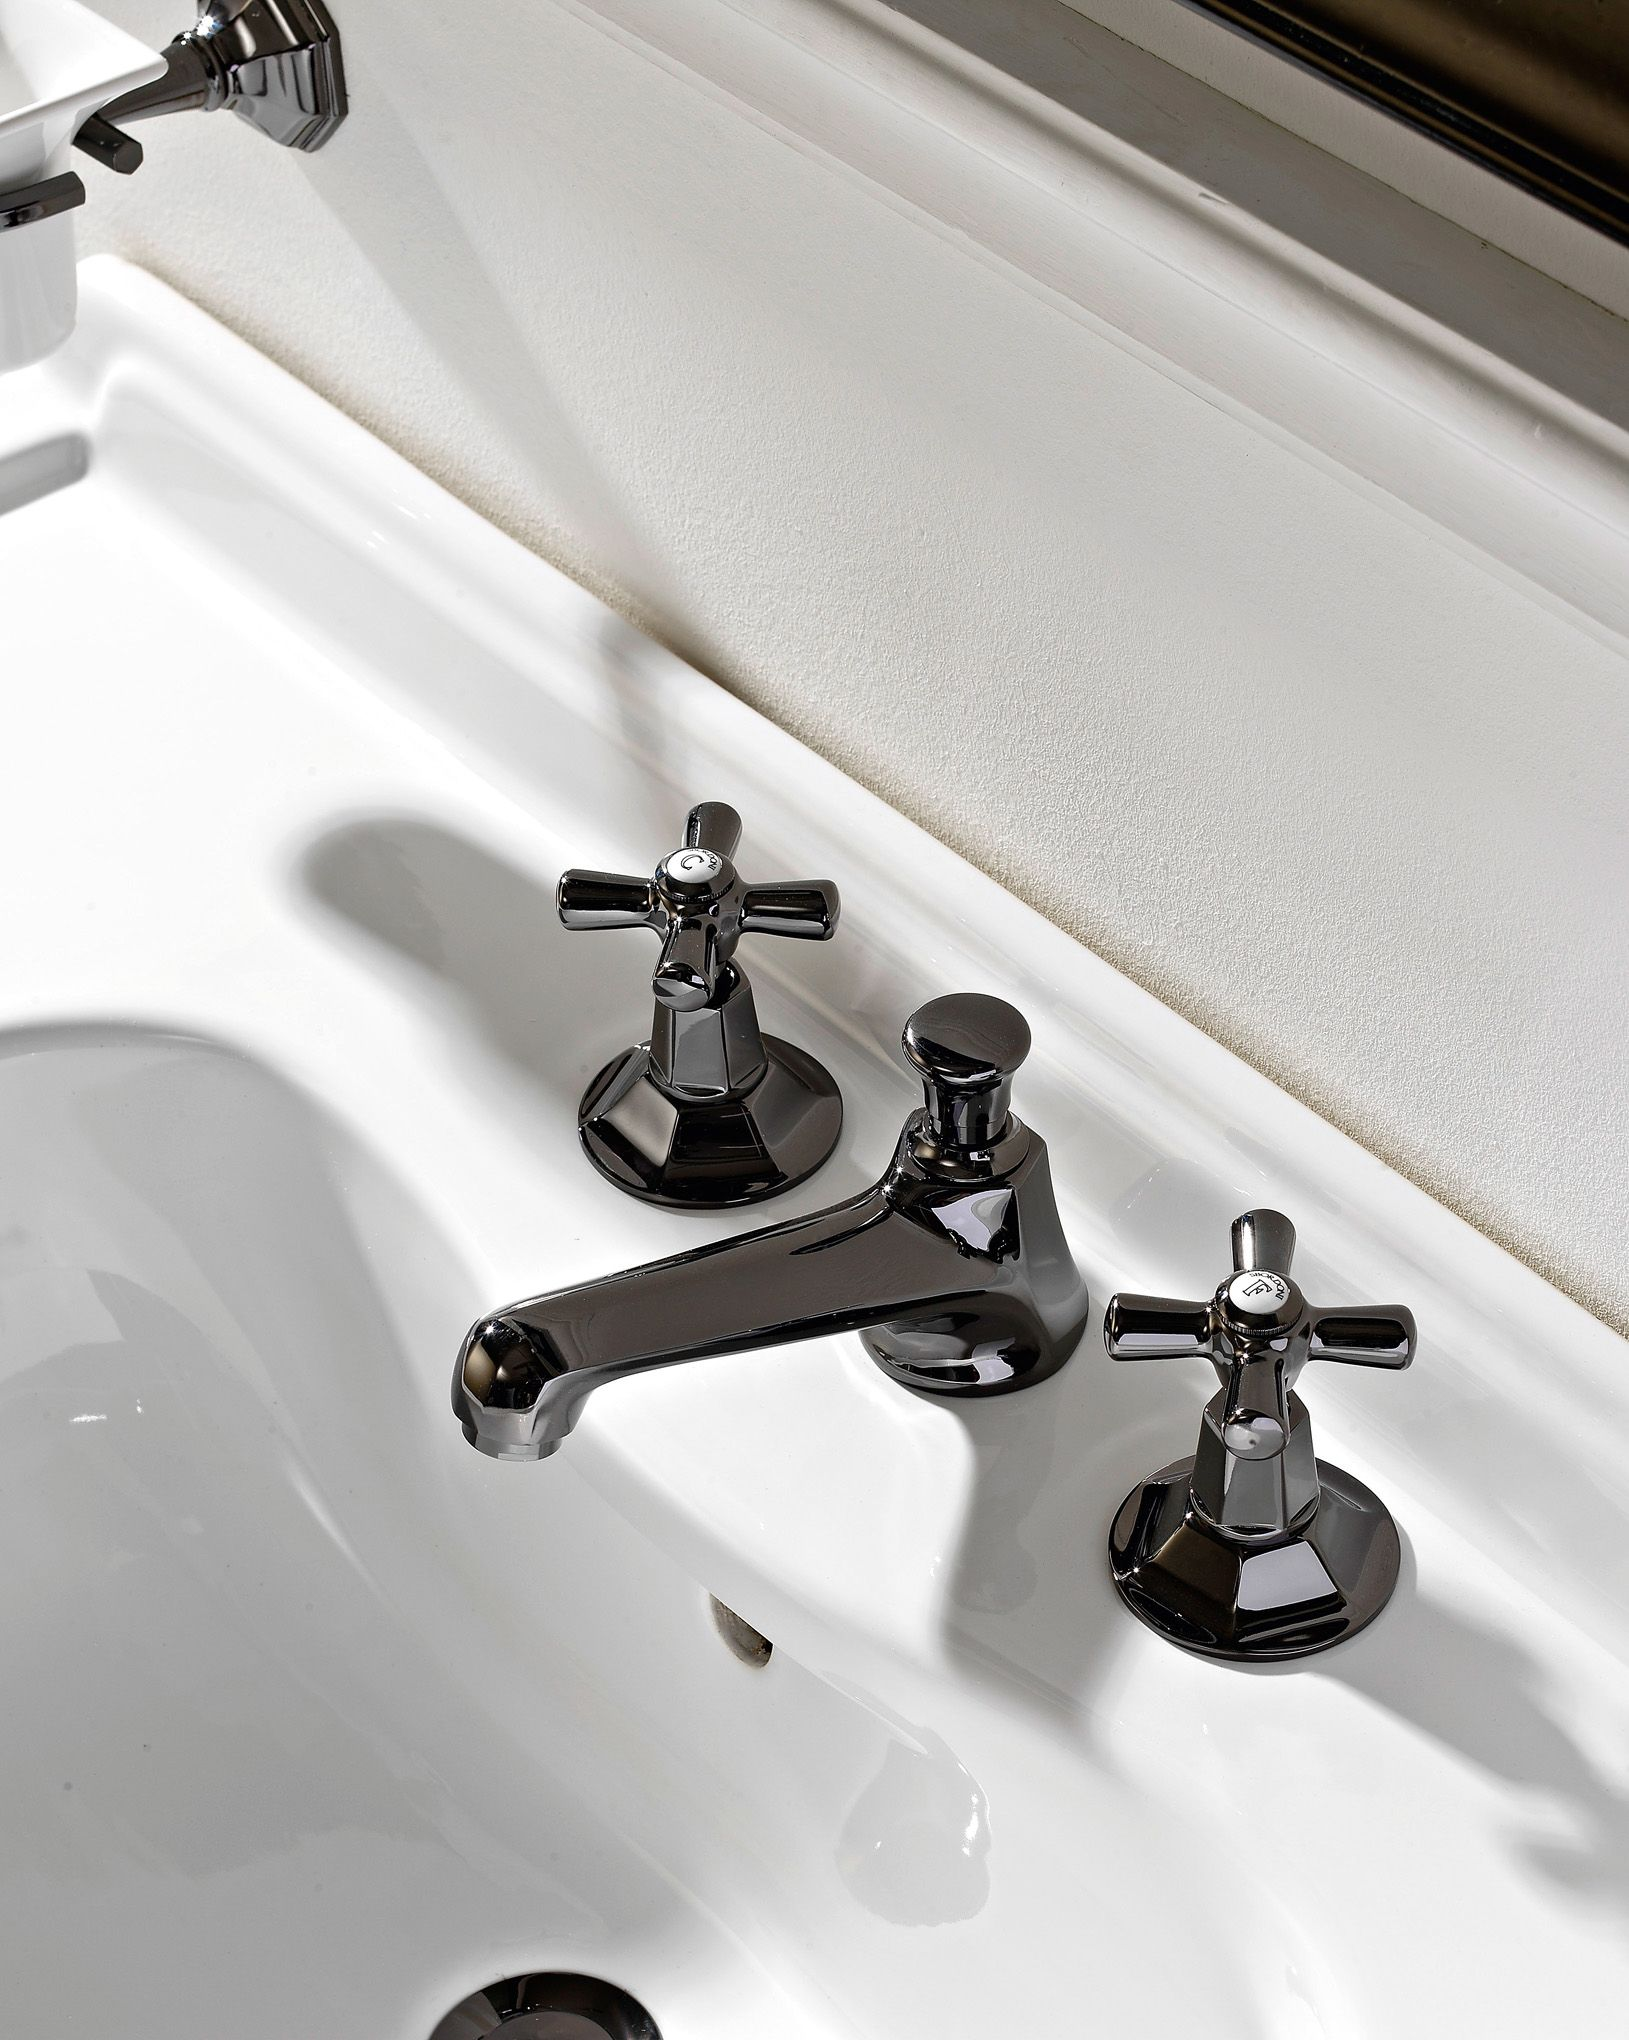 Matching Art Deco taps are also available with finishes in chrome ...